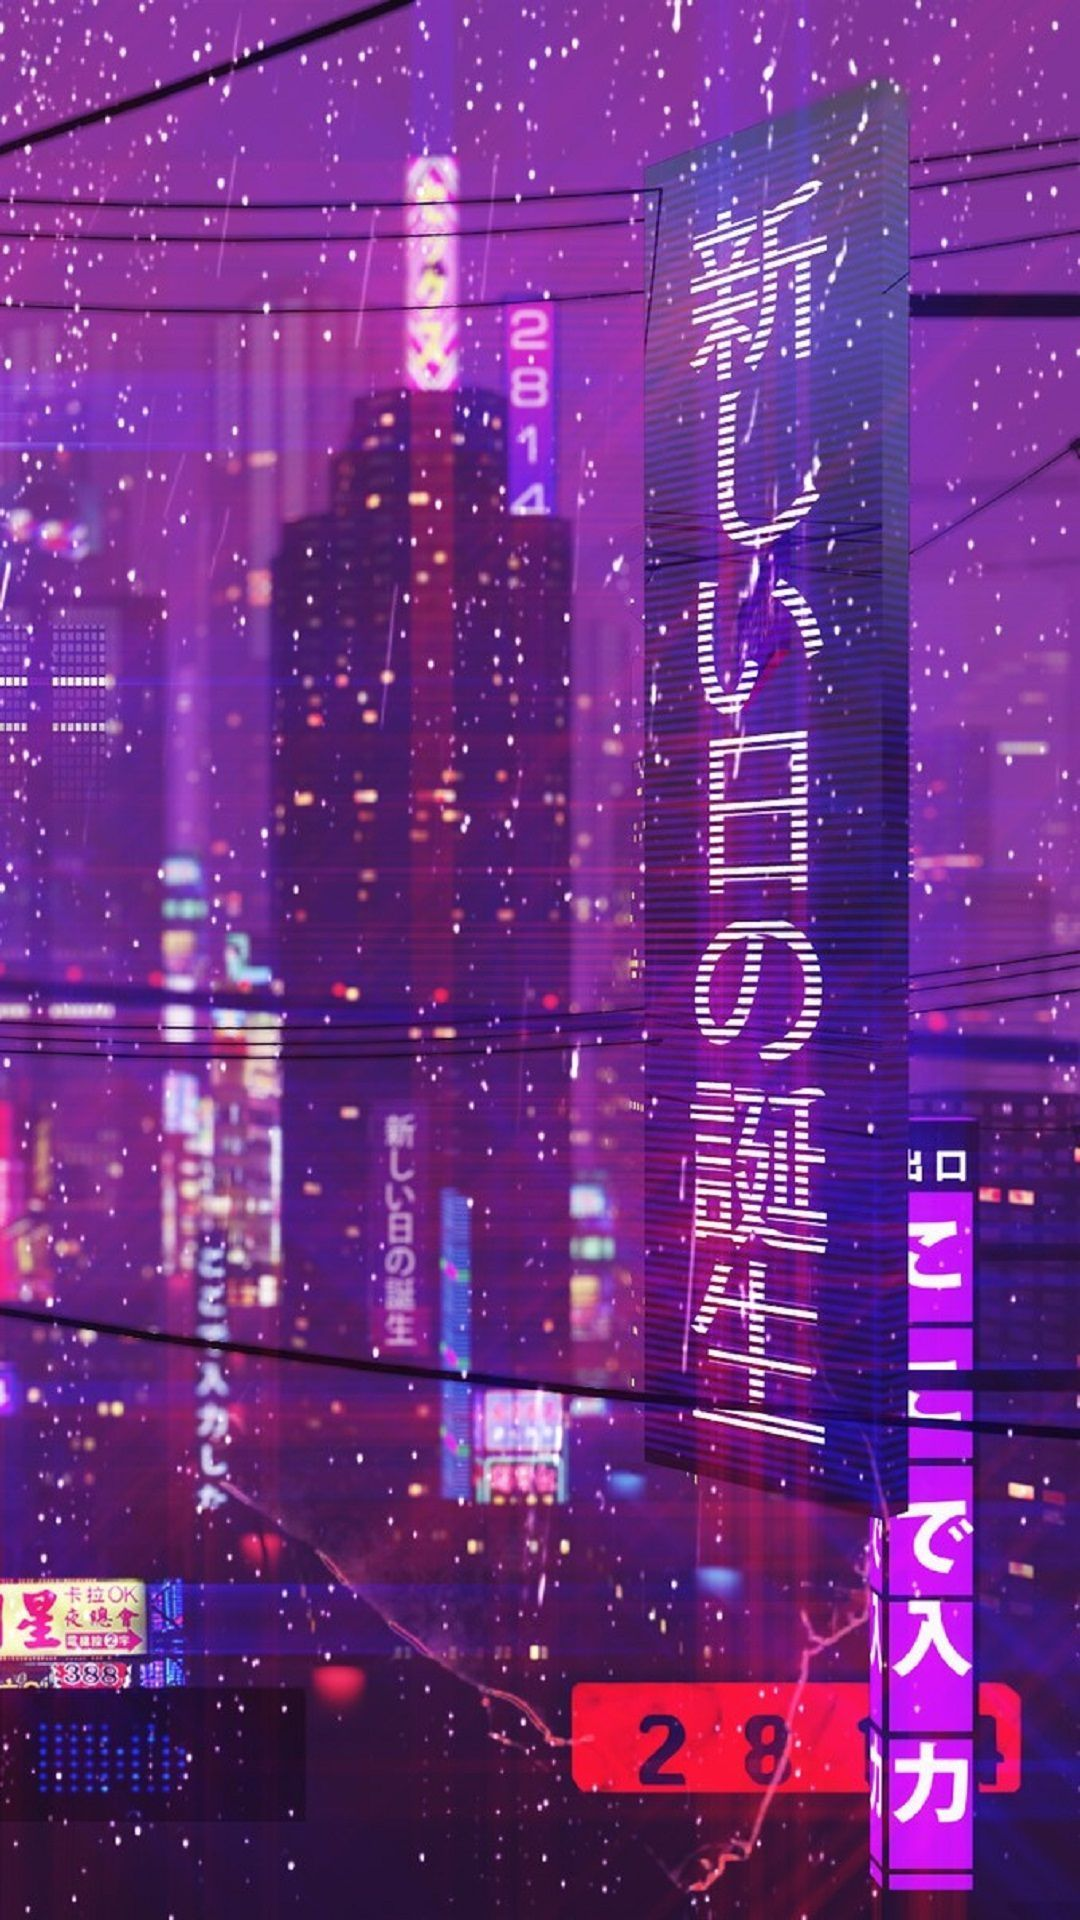 Iphone X Wallpaper Cyberpunk New The Most Awesome Images On